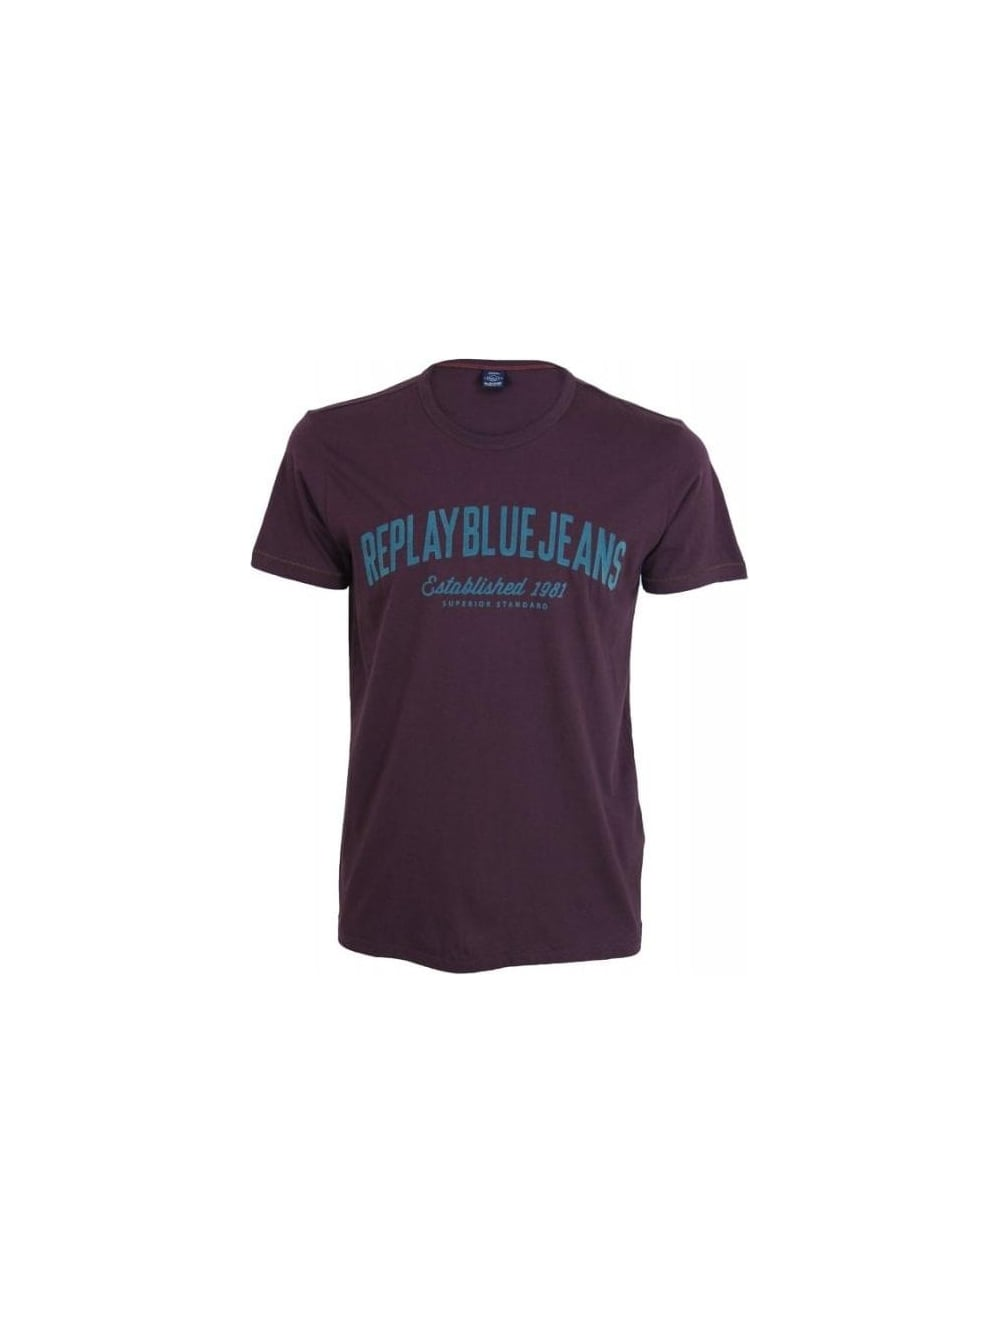 0d2987ac45 Replay Established 1981 T.Shirt in Maroon - Northern Threads